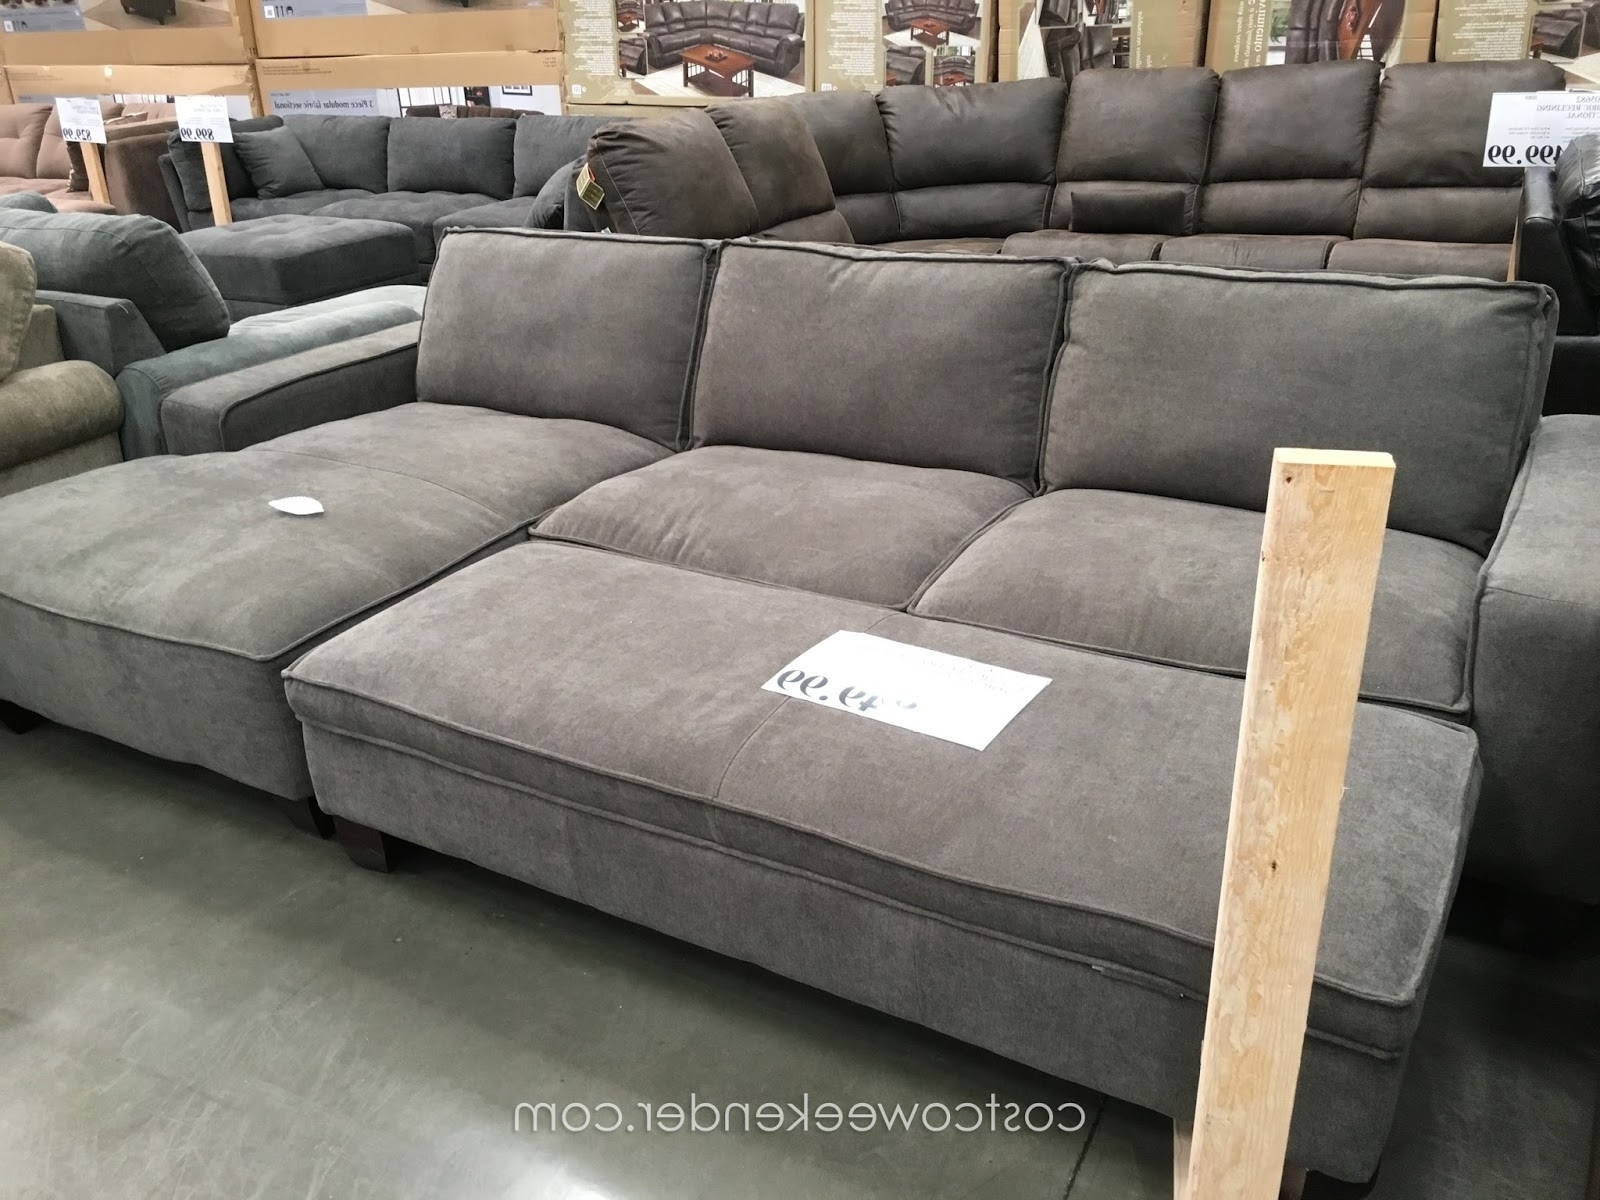 Widely Used Furniture: Couches Costco (View 15 of 15)